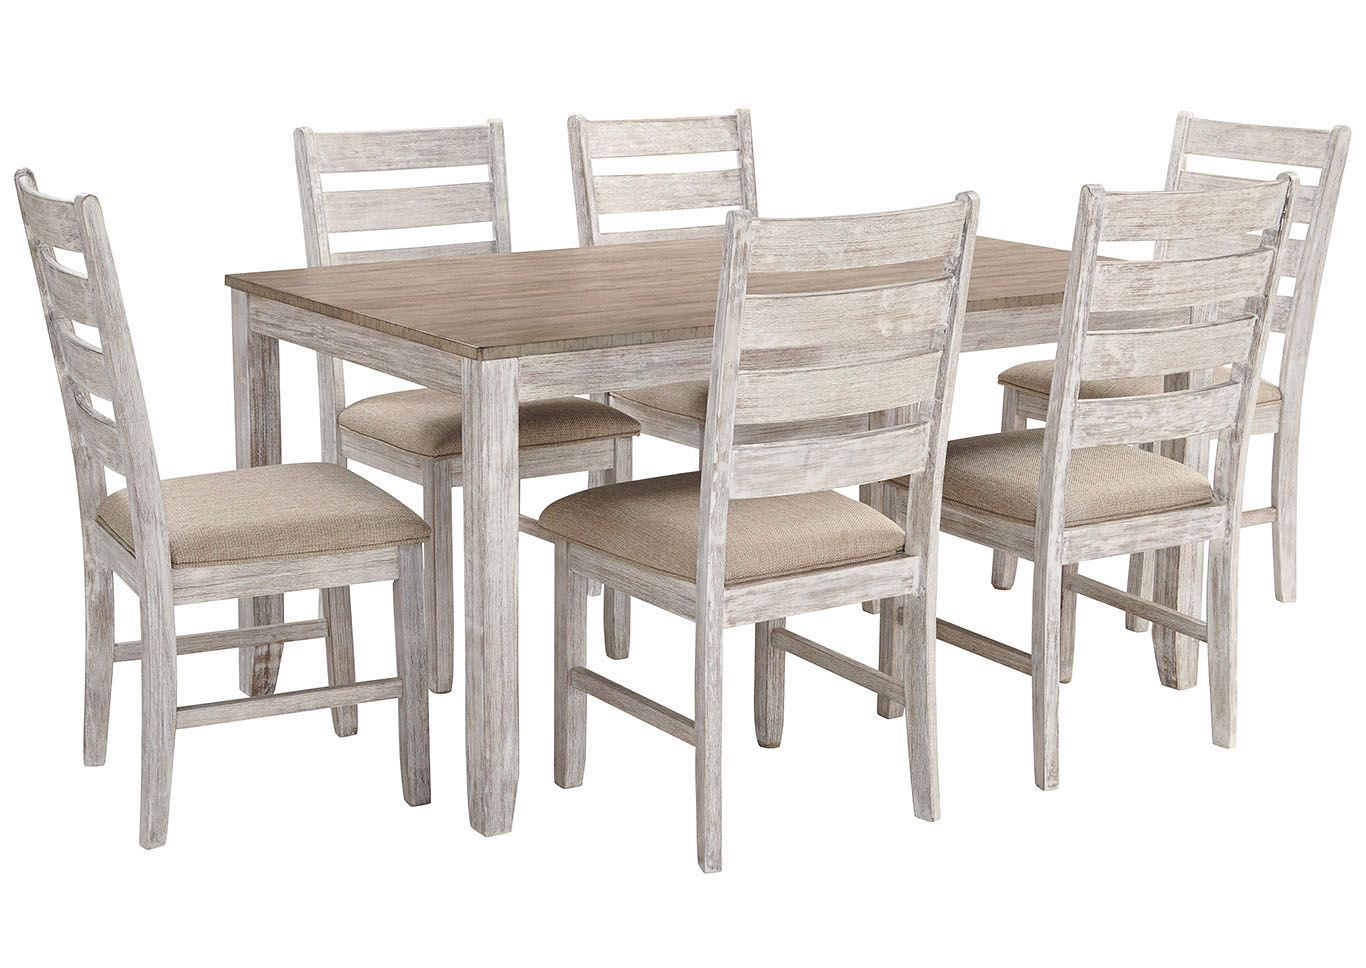 Cheap Dining Room Table And Chairs River City Furniture Skempton White Light Brown 7 Piece Dining